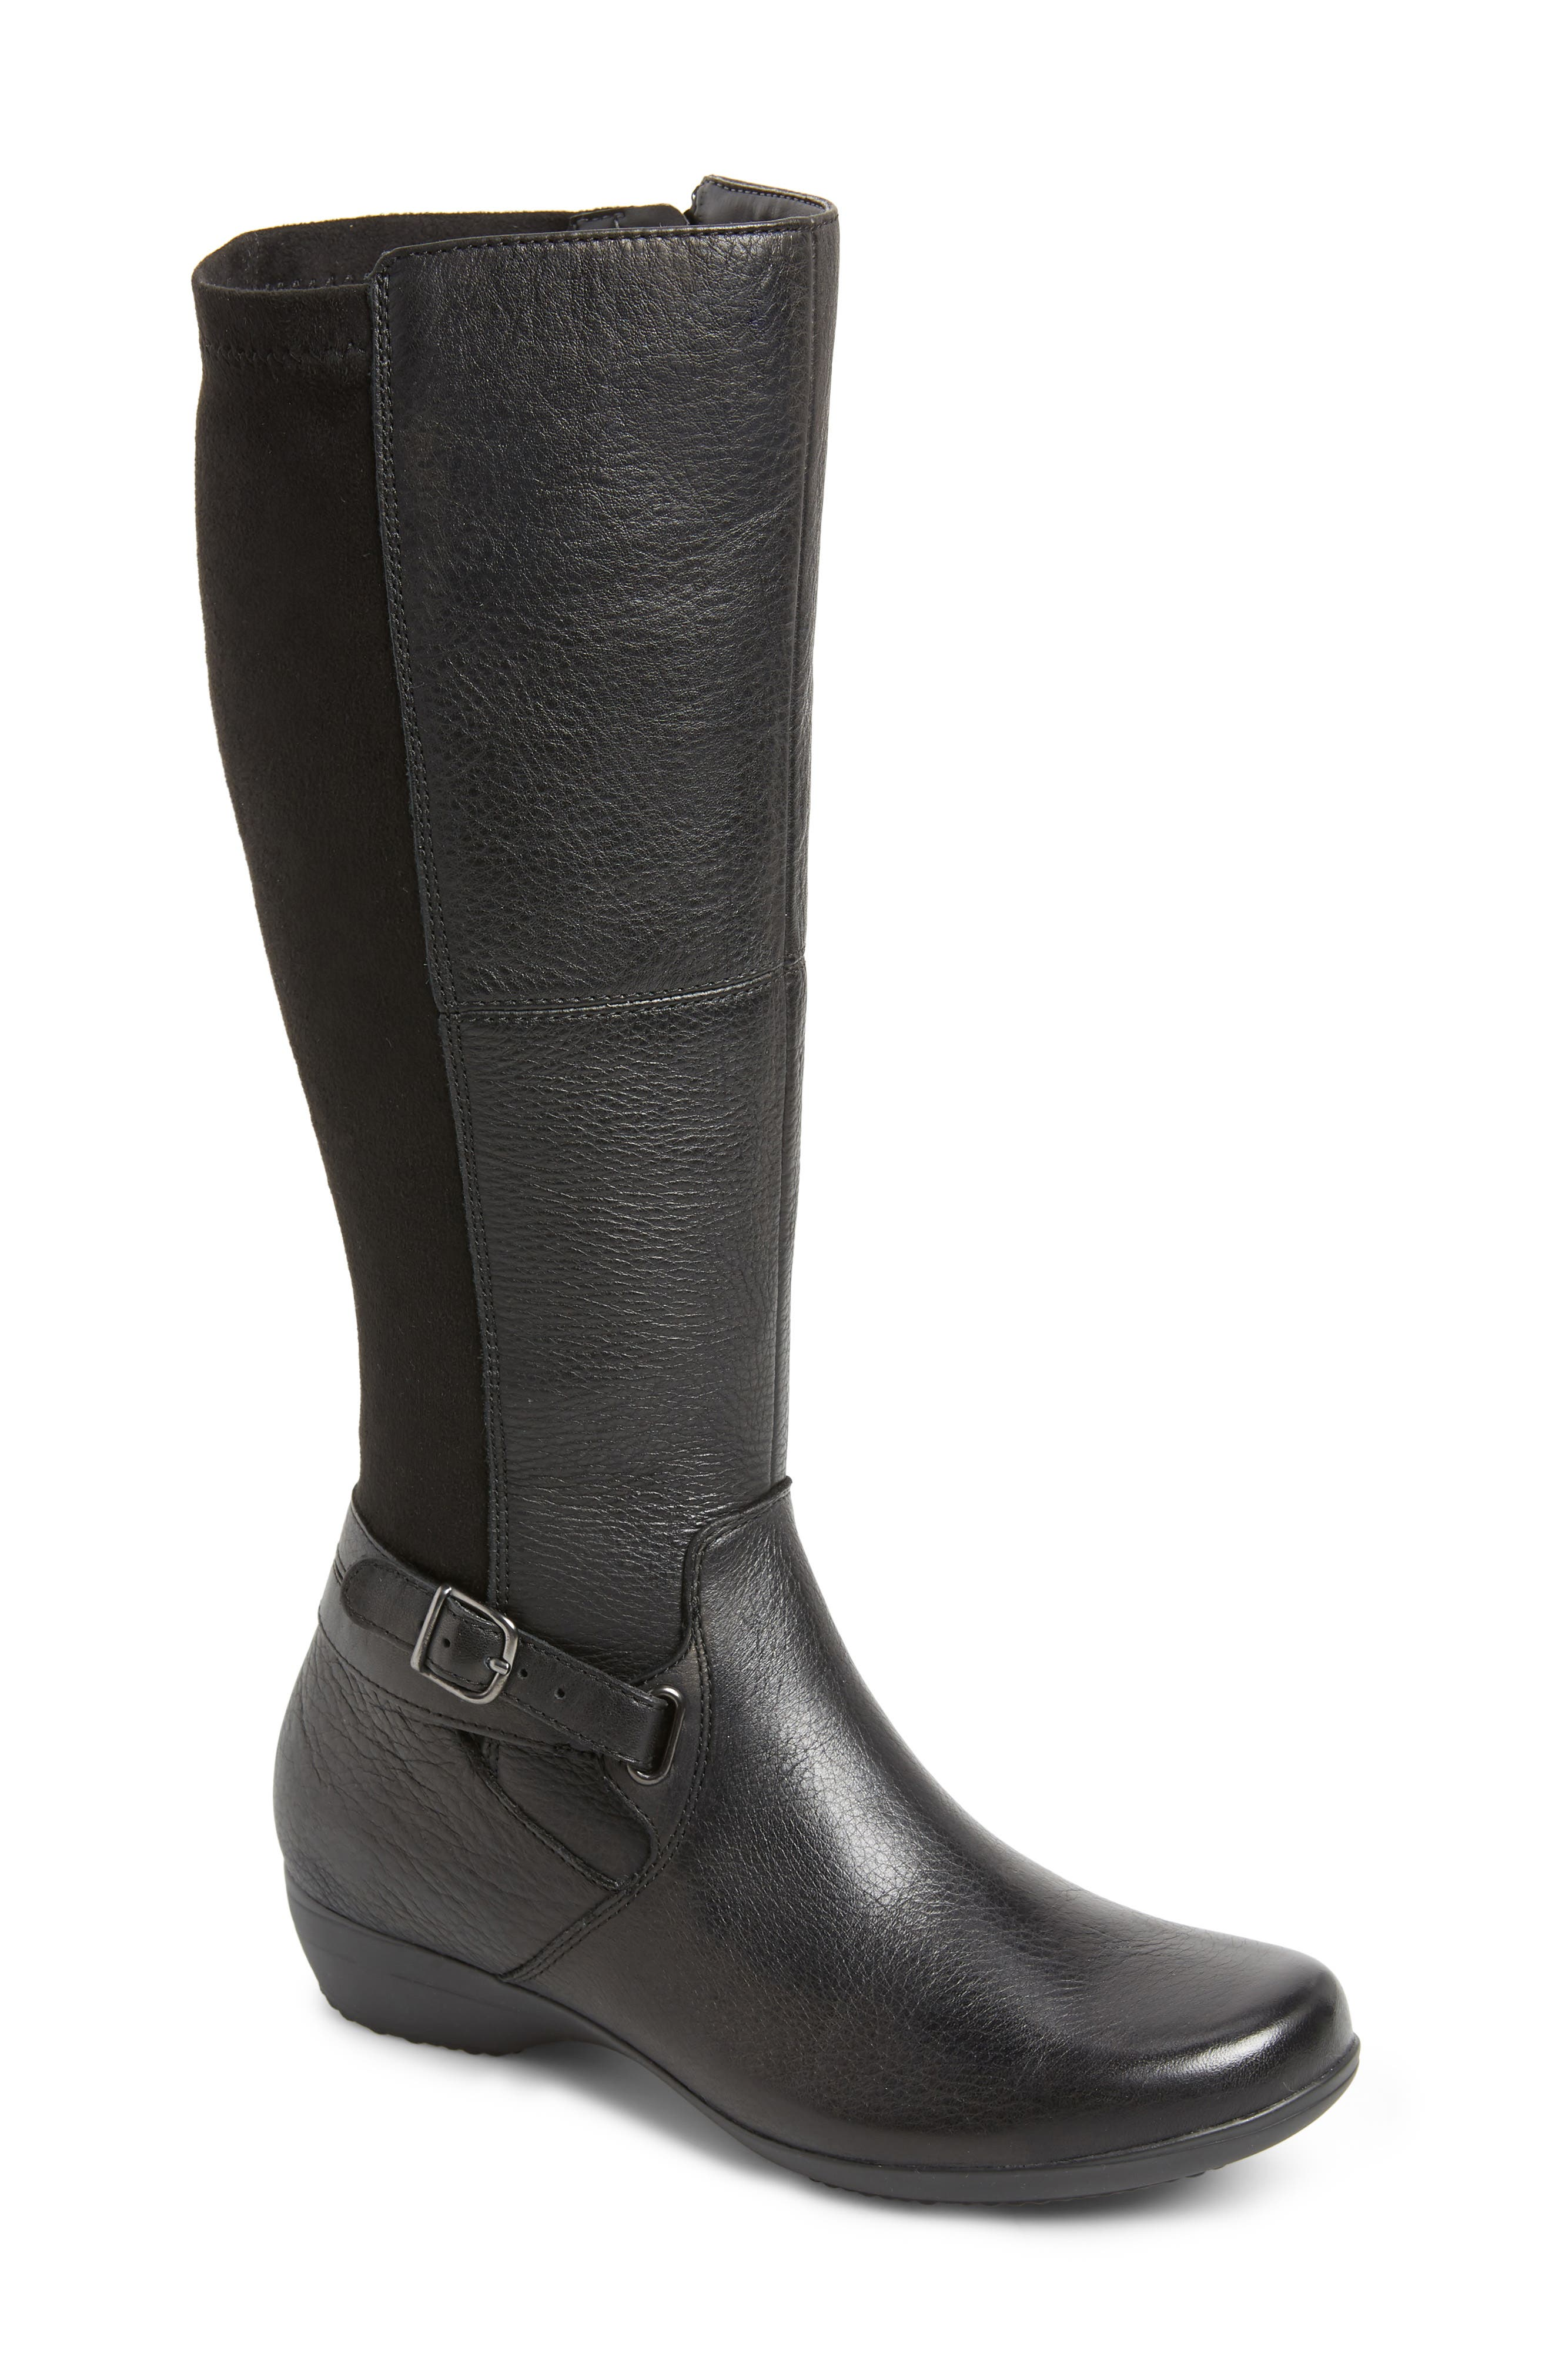 Francesca Knee High Riding Boot in Black Leather